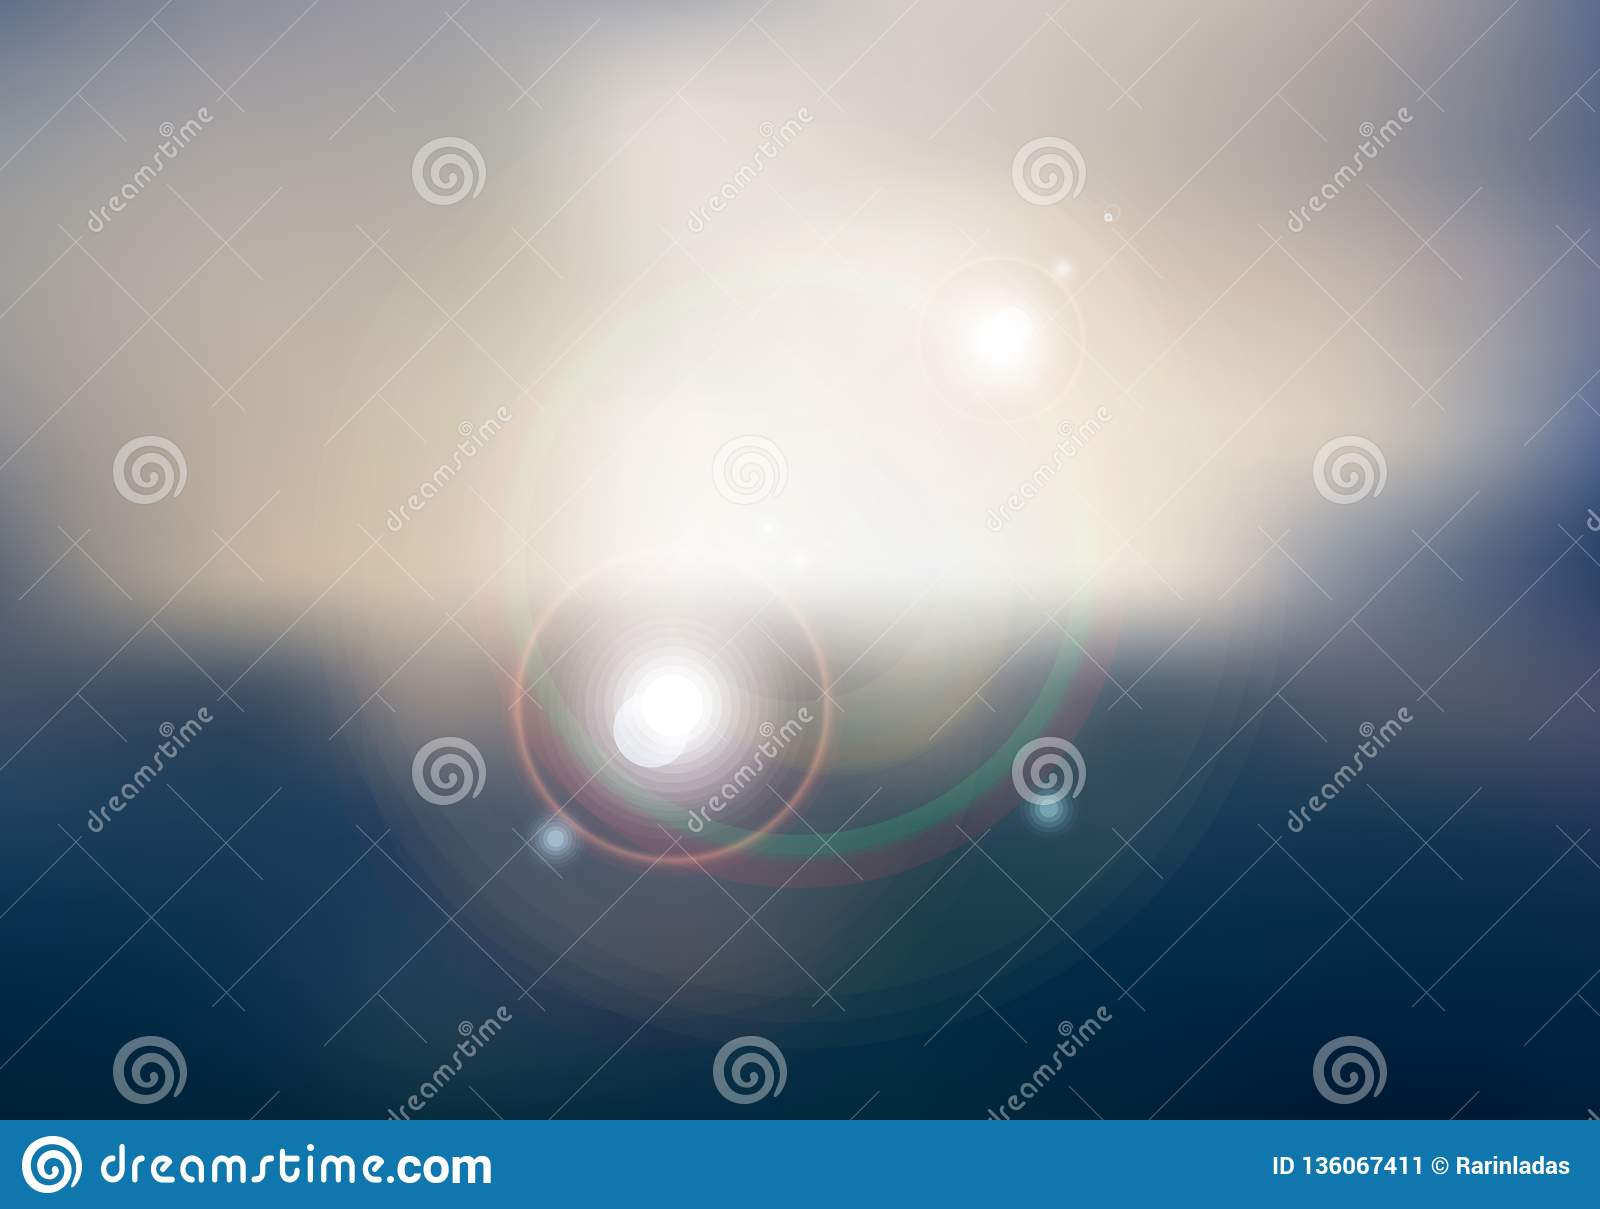 Abstract sunset or sunrise sky and sun shining blurred background with flare